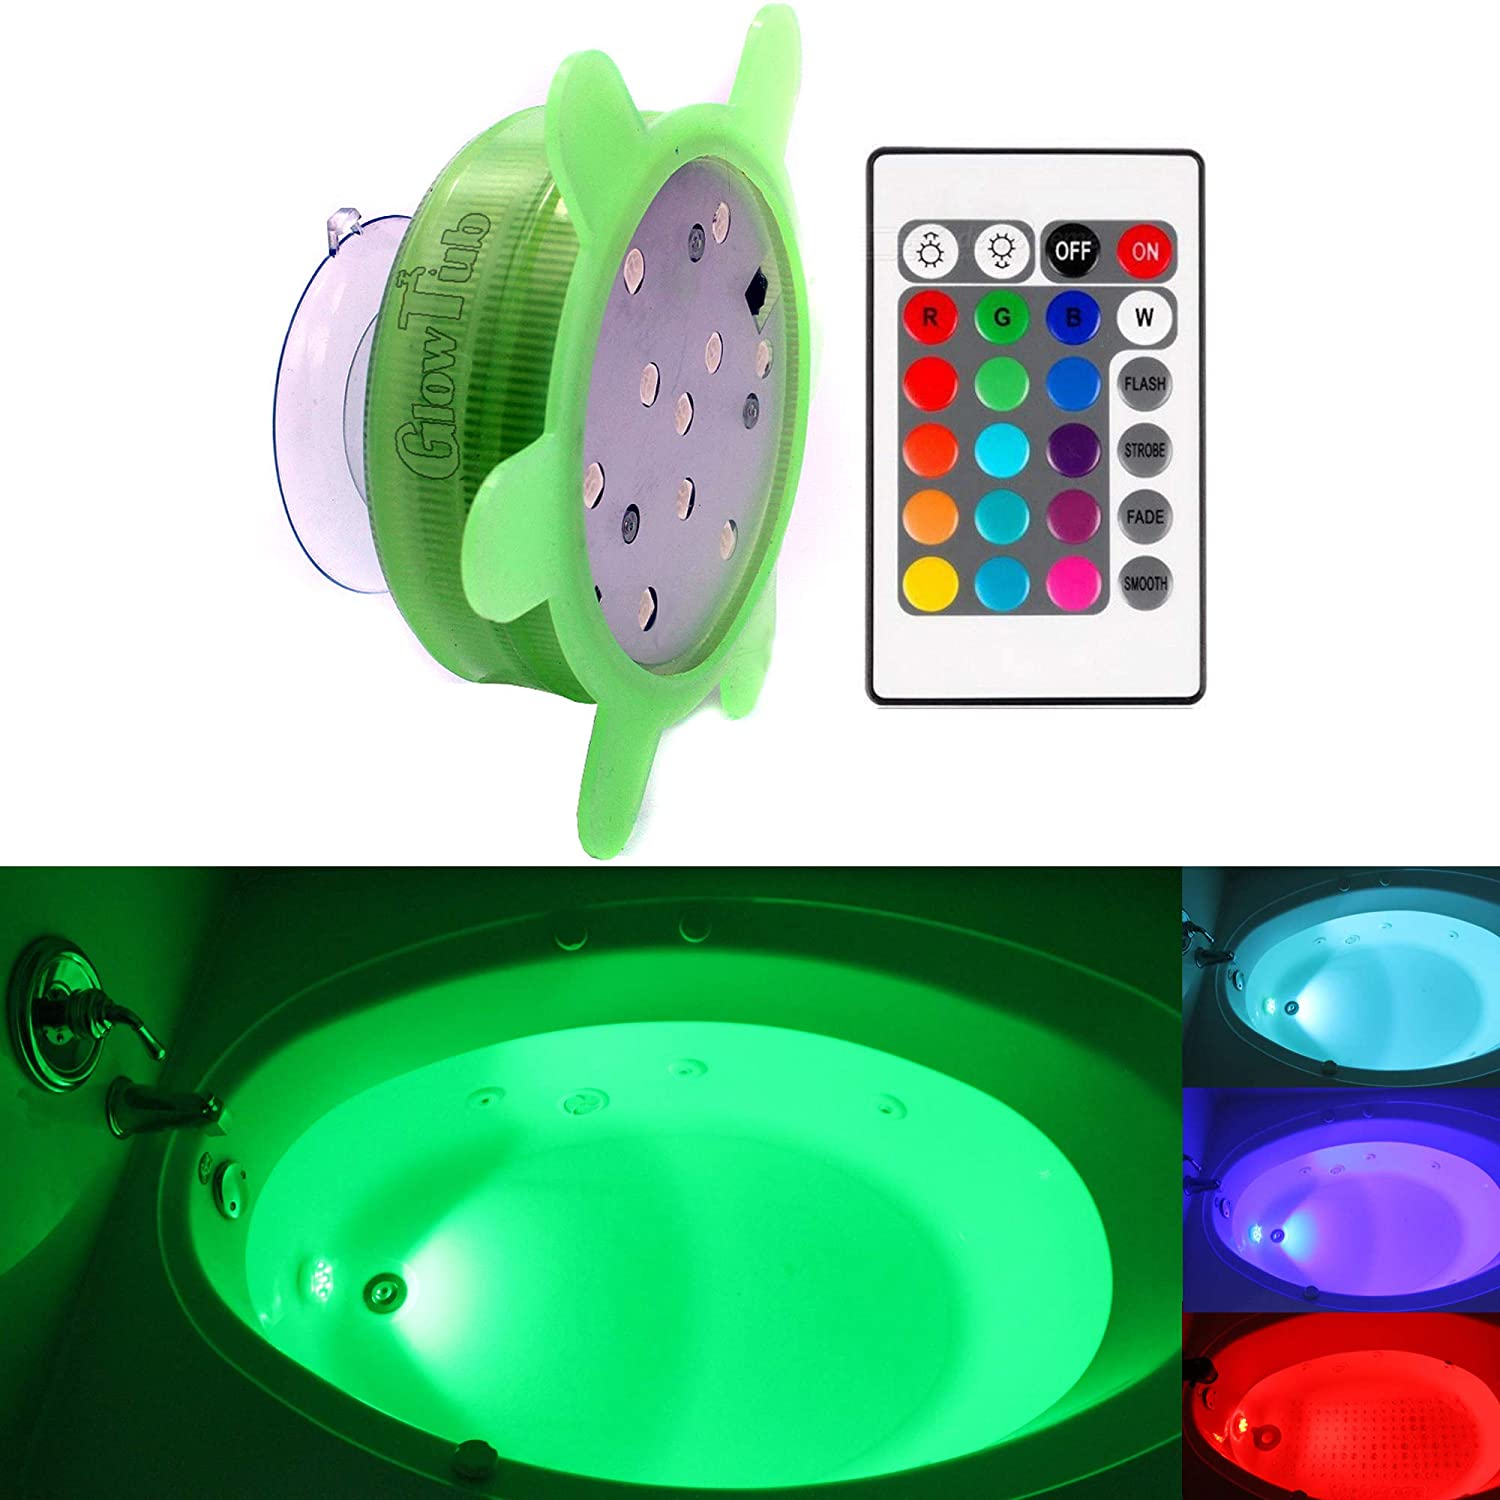 Amazon.com: GlowTub Underwater Remote Controlled LED Color Changing ...